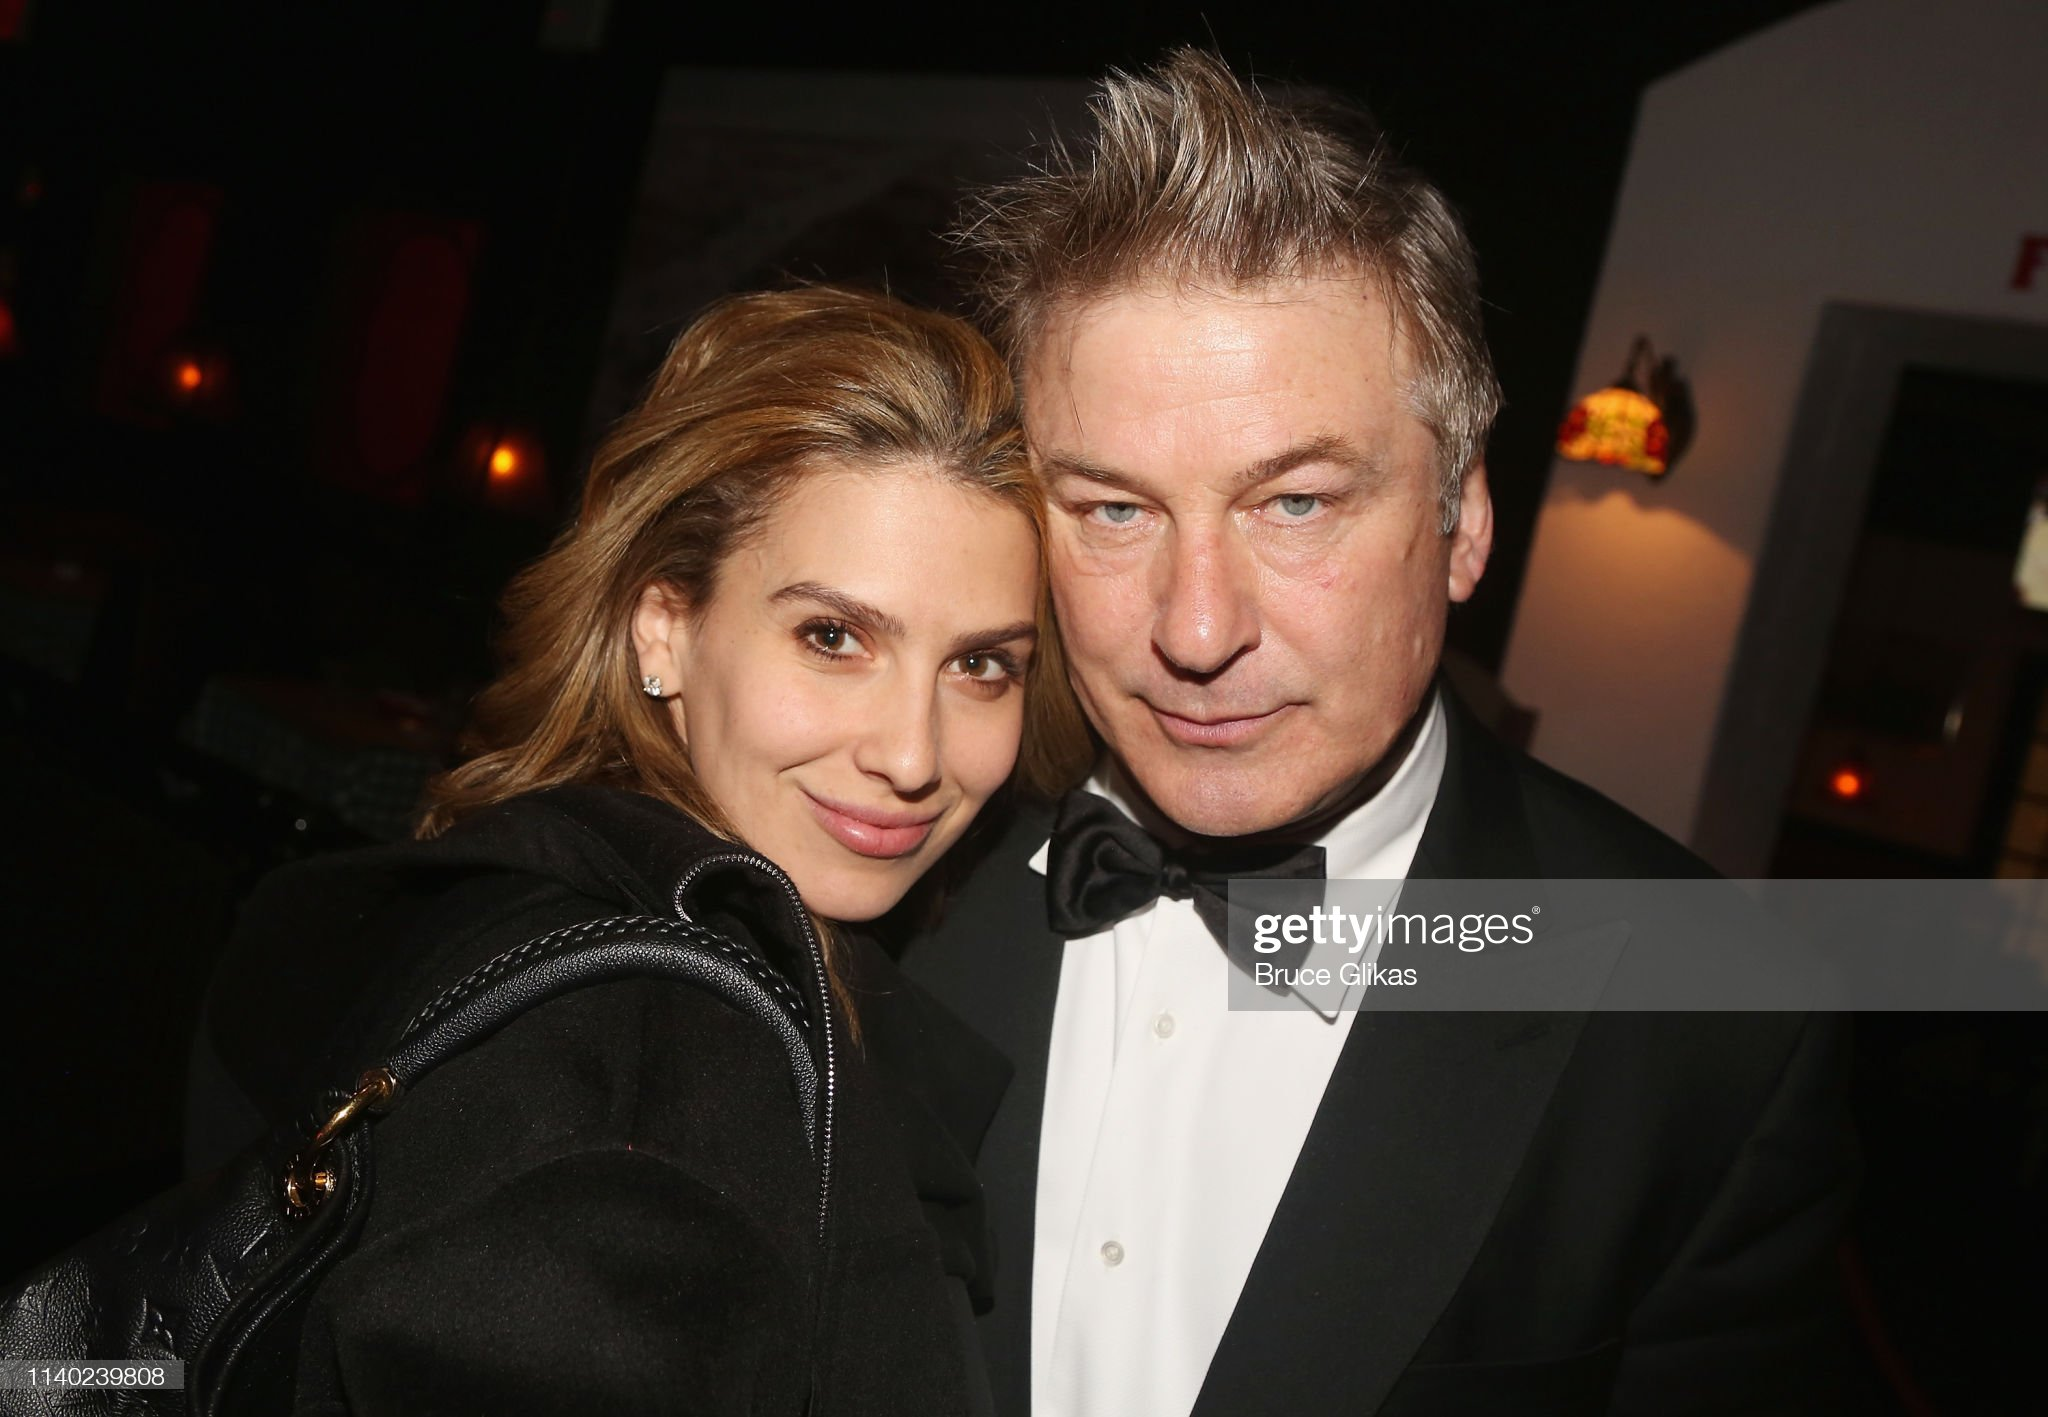 Why has Alec Baldwin quit Twitter, again?